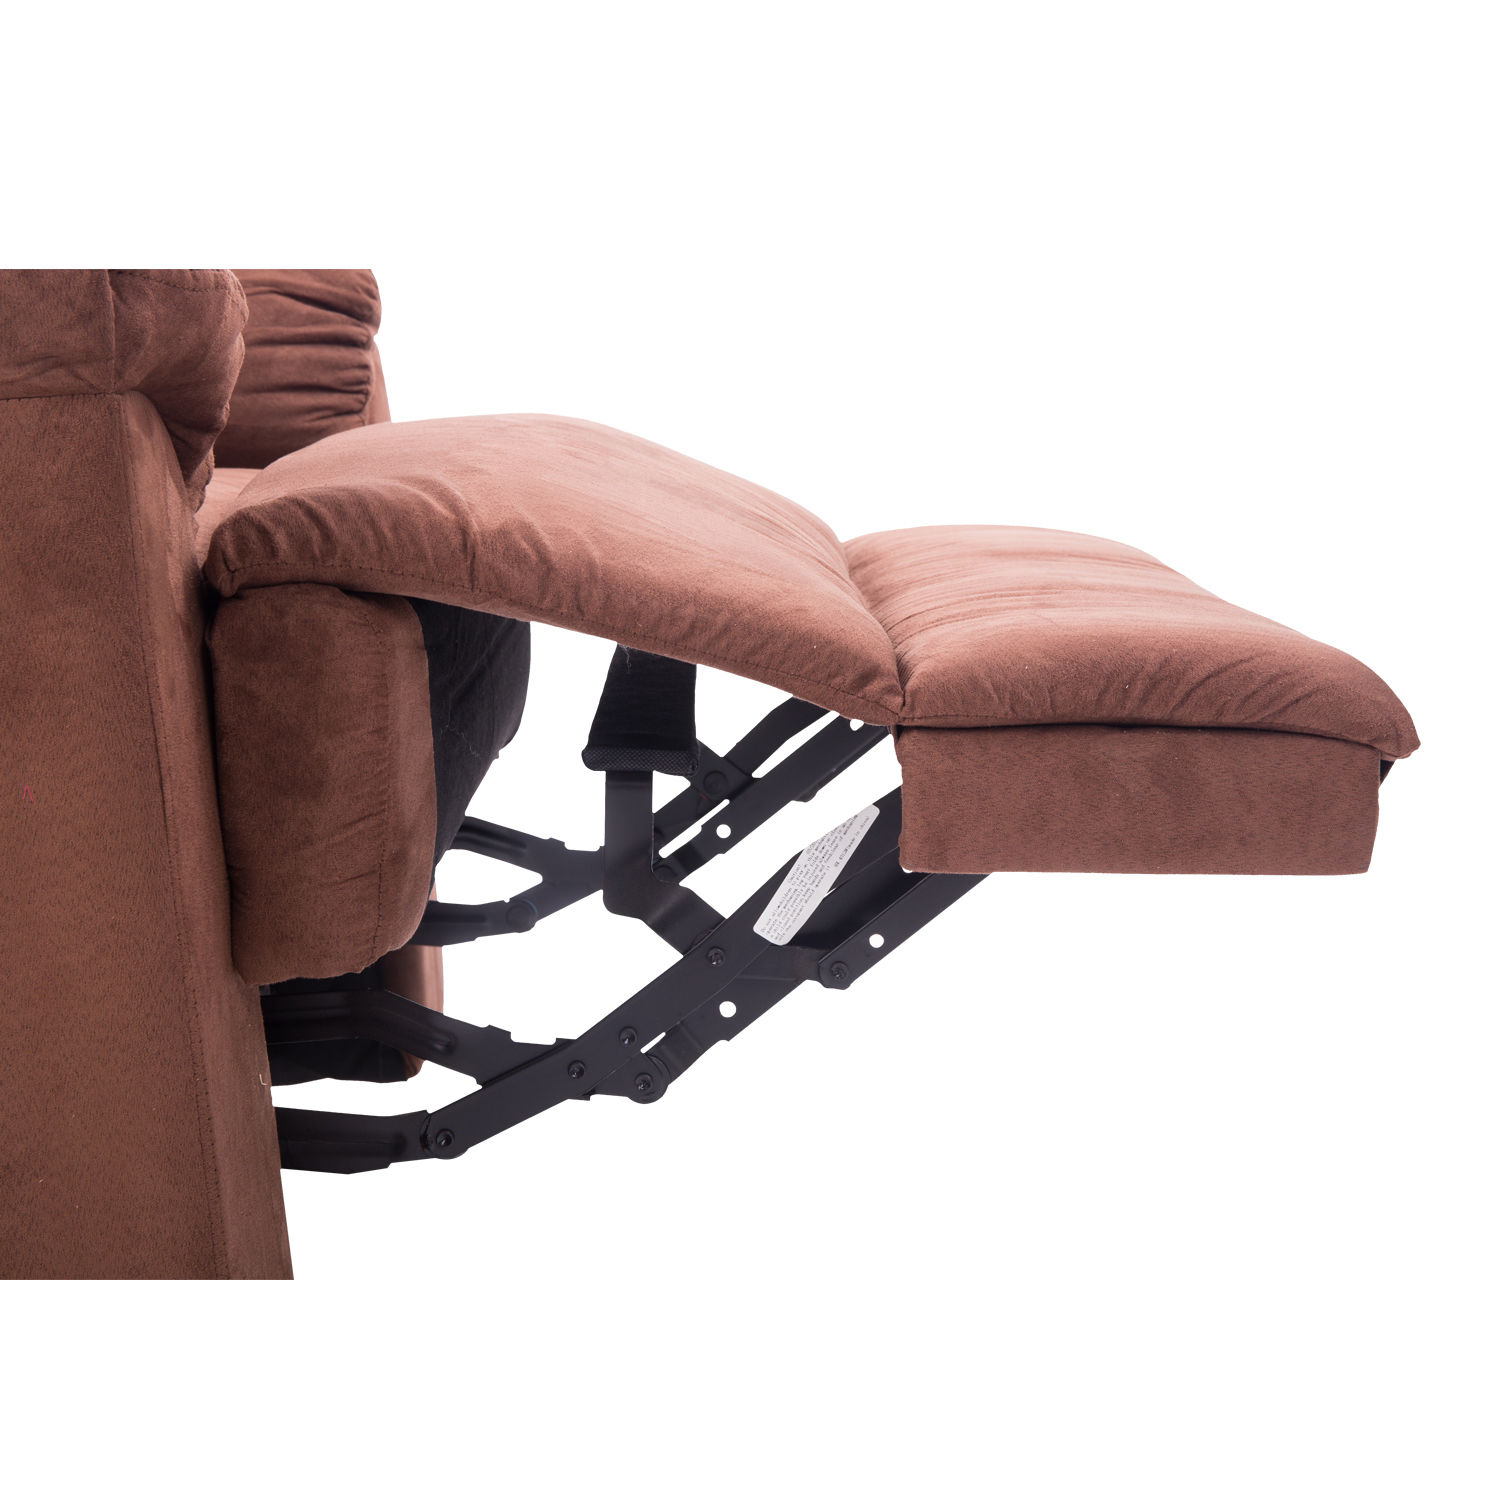 how much are massage chairs swivel chair value city heated recliner vibrating turns sofa w